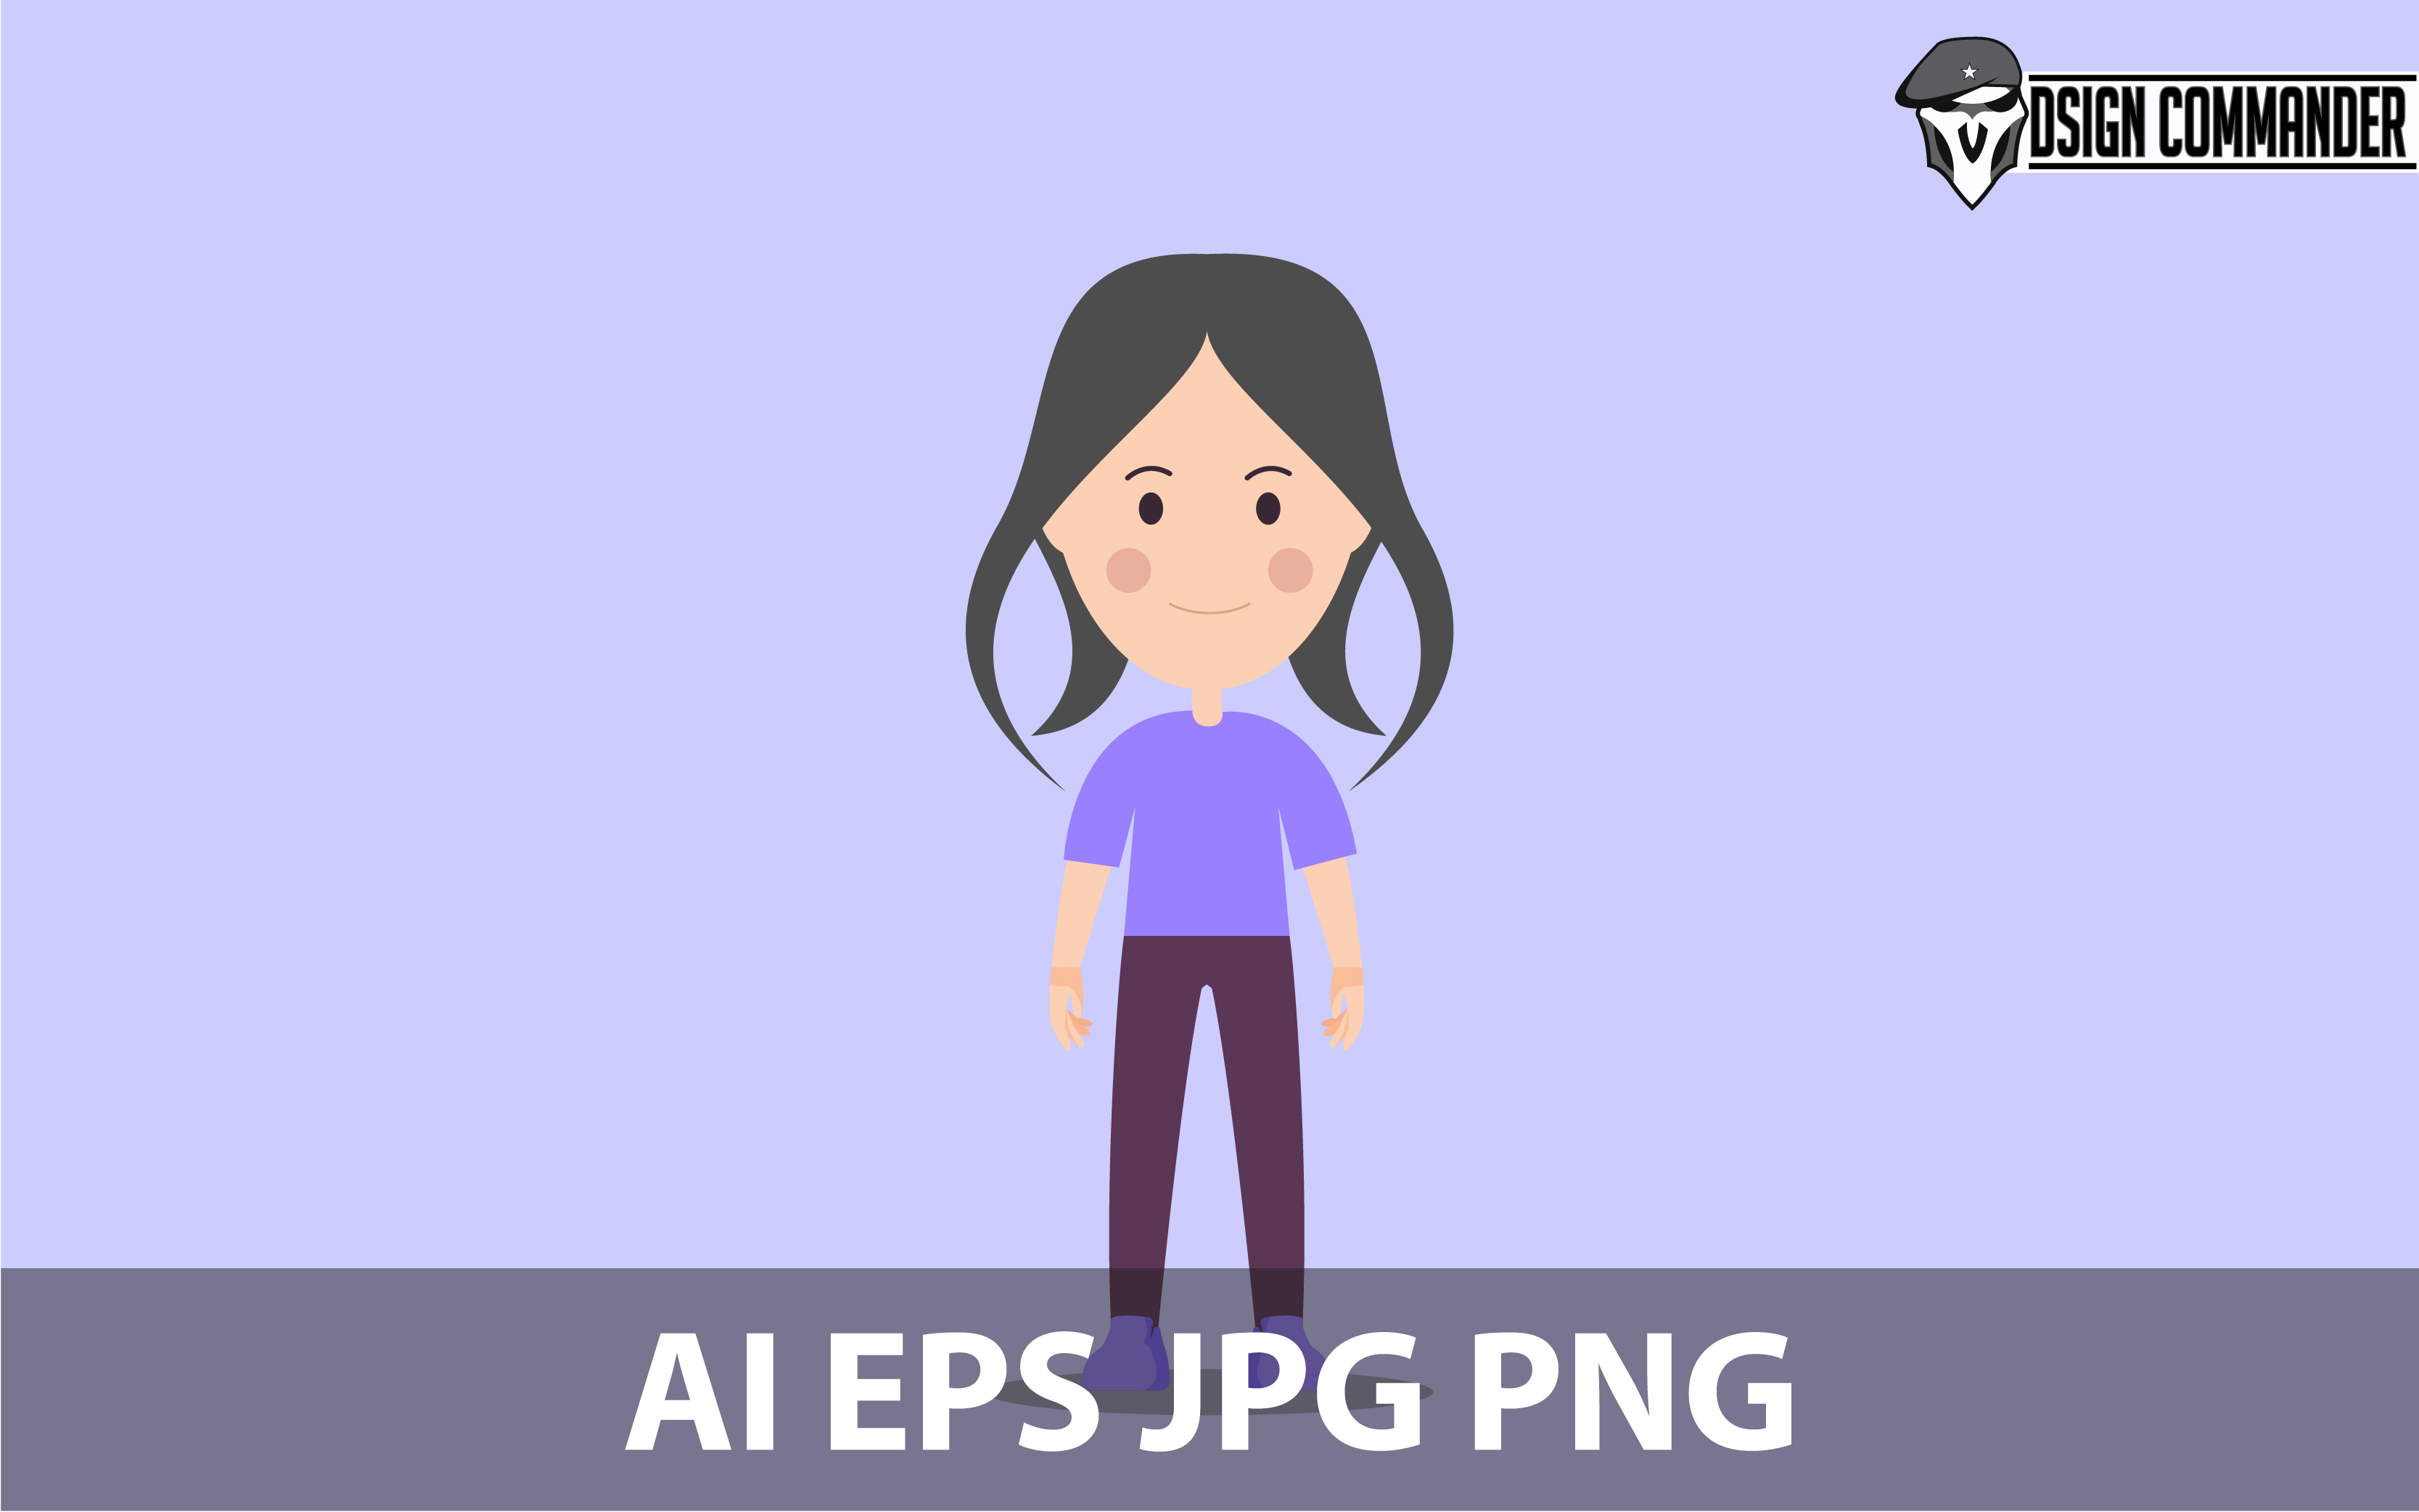 Download Free Chibi Character Design Vector Grafico Por Designcommander62 for Cricut Explore, Silhouette and other cutting machines.